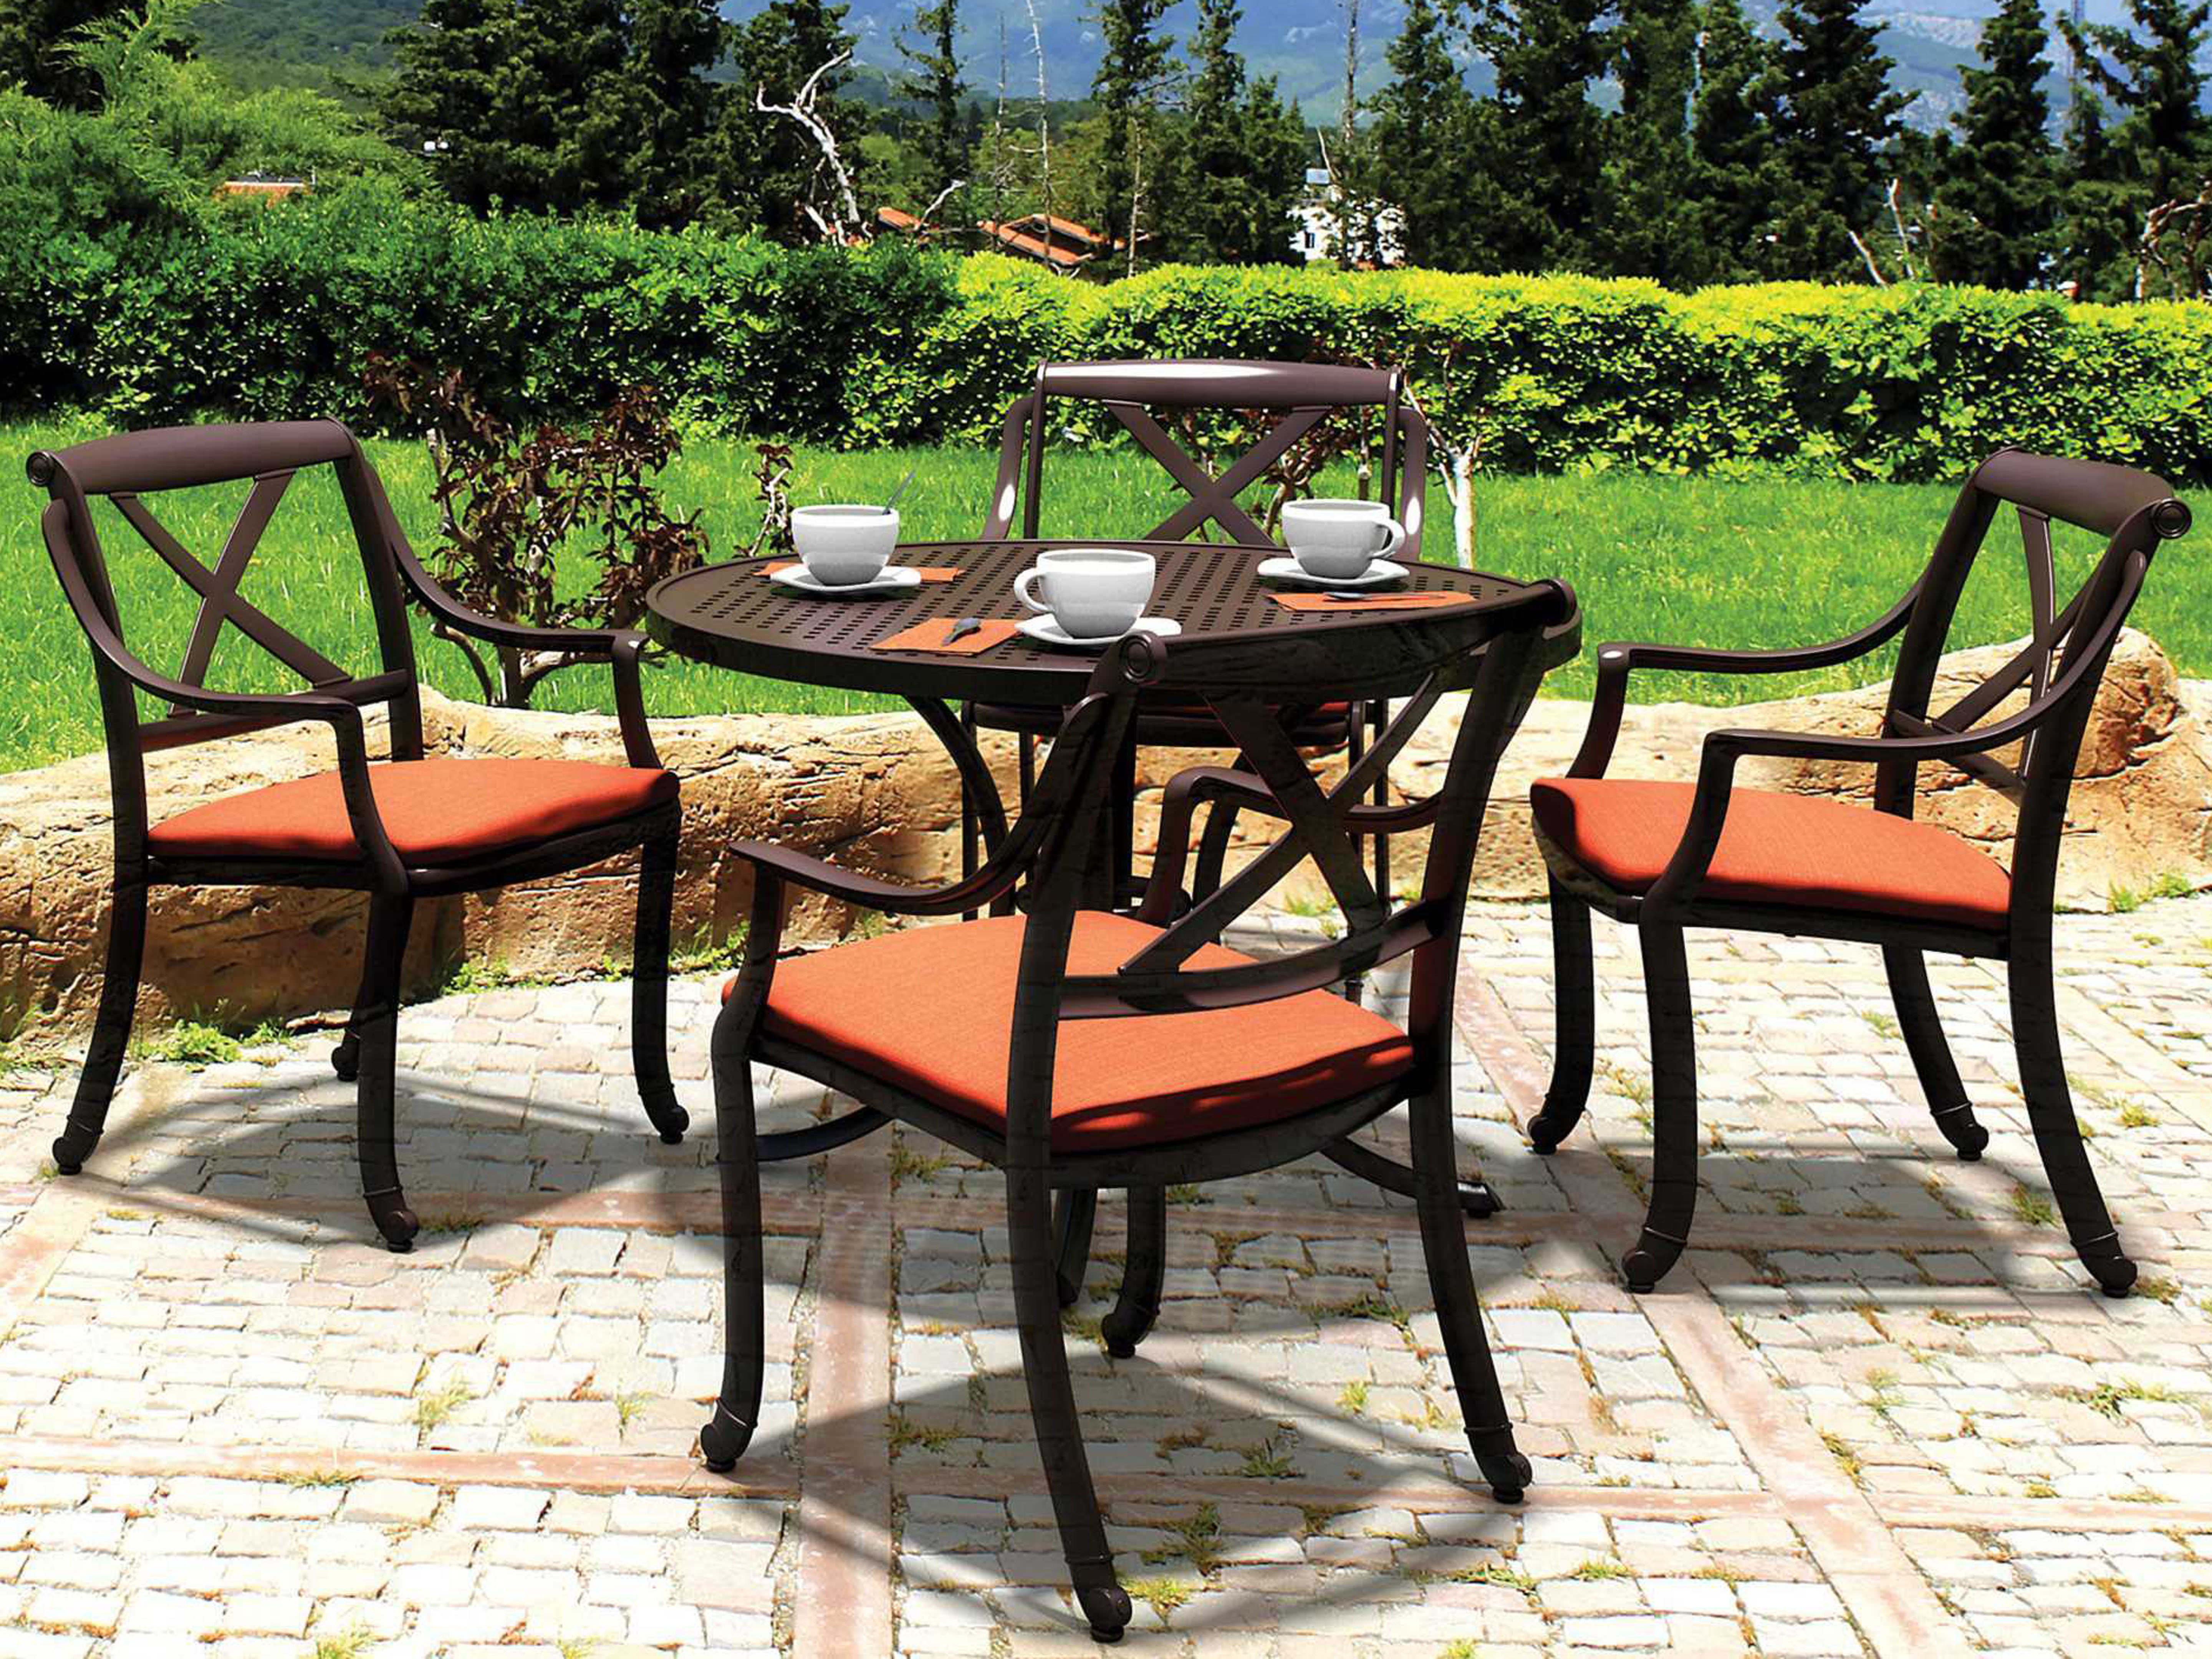 Tropitone Belmar Xback Cast Aluminum Dining Chair With Seat Pad - Tropitone outdoor furniture